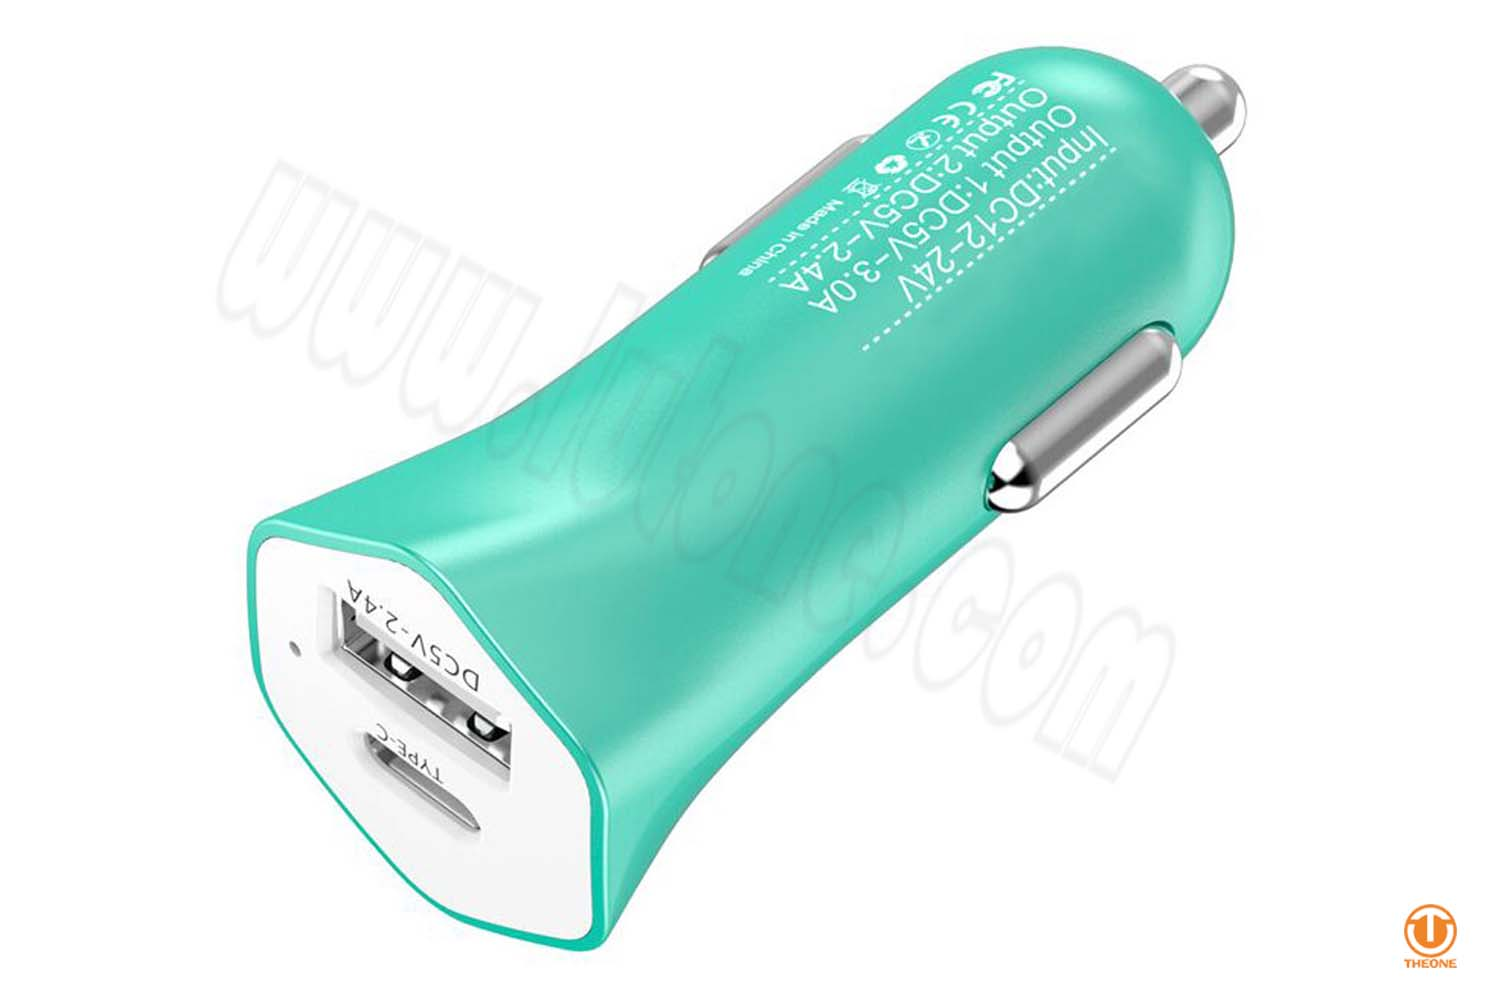 tc27ca-1 typec usb car charger